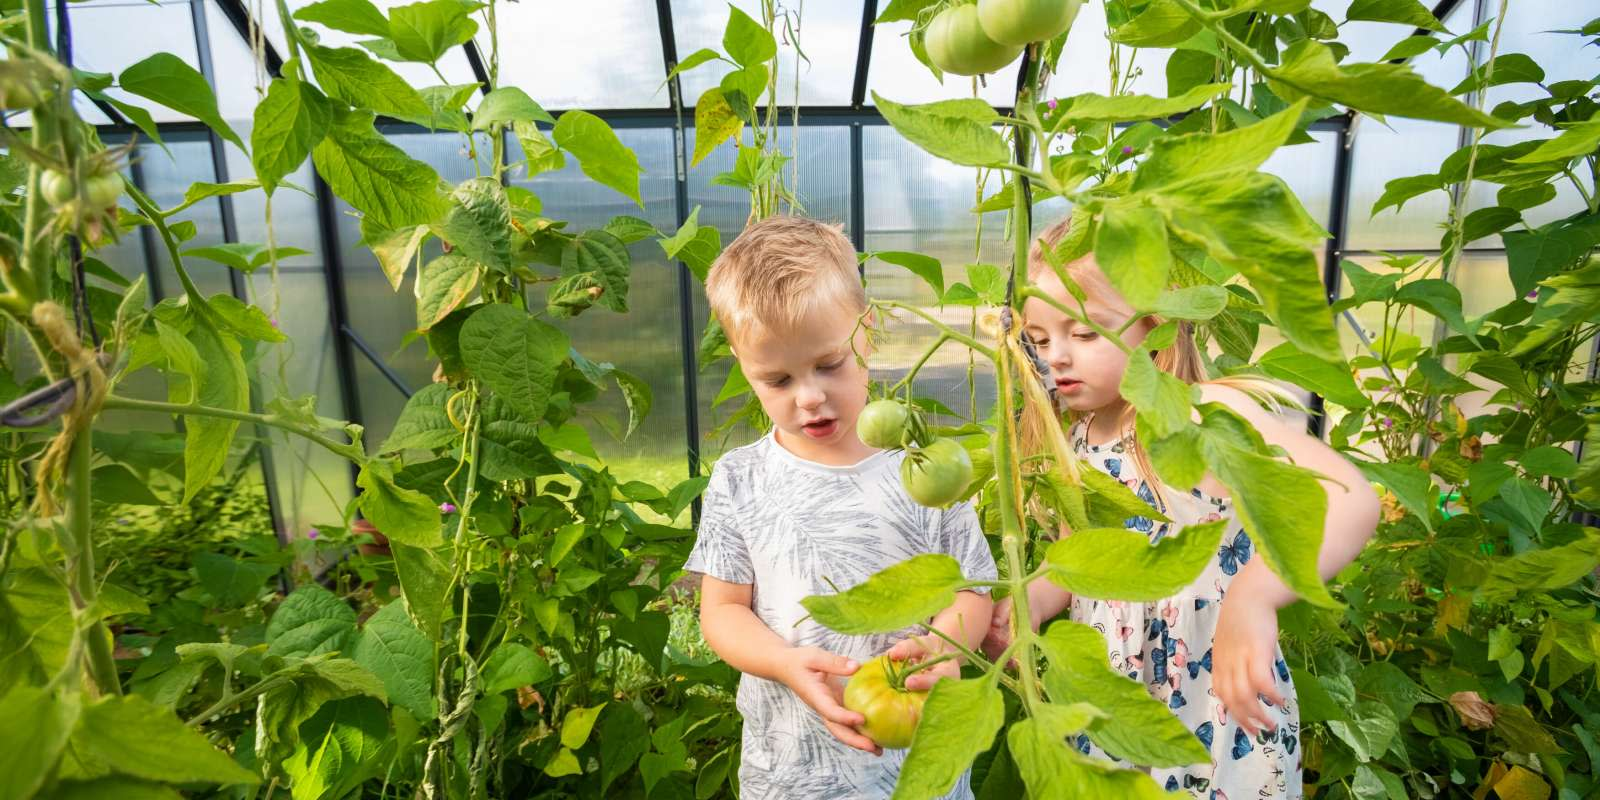 Children looking at tomatoes on the vine in Millbrook's Green House